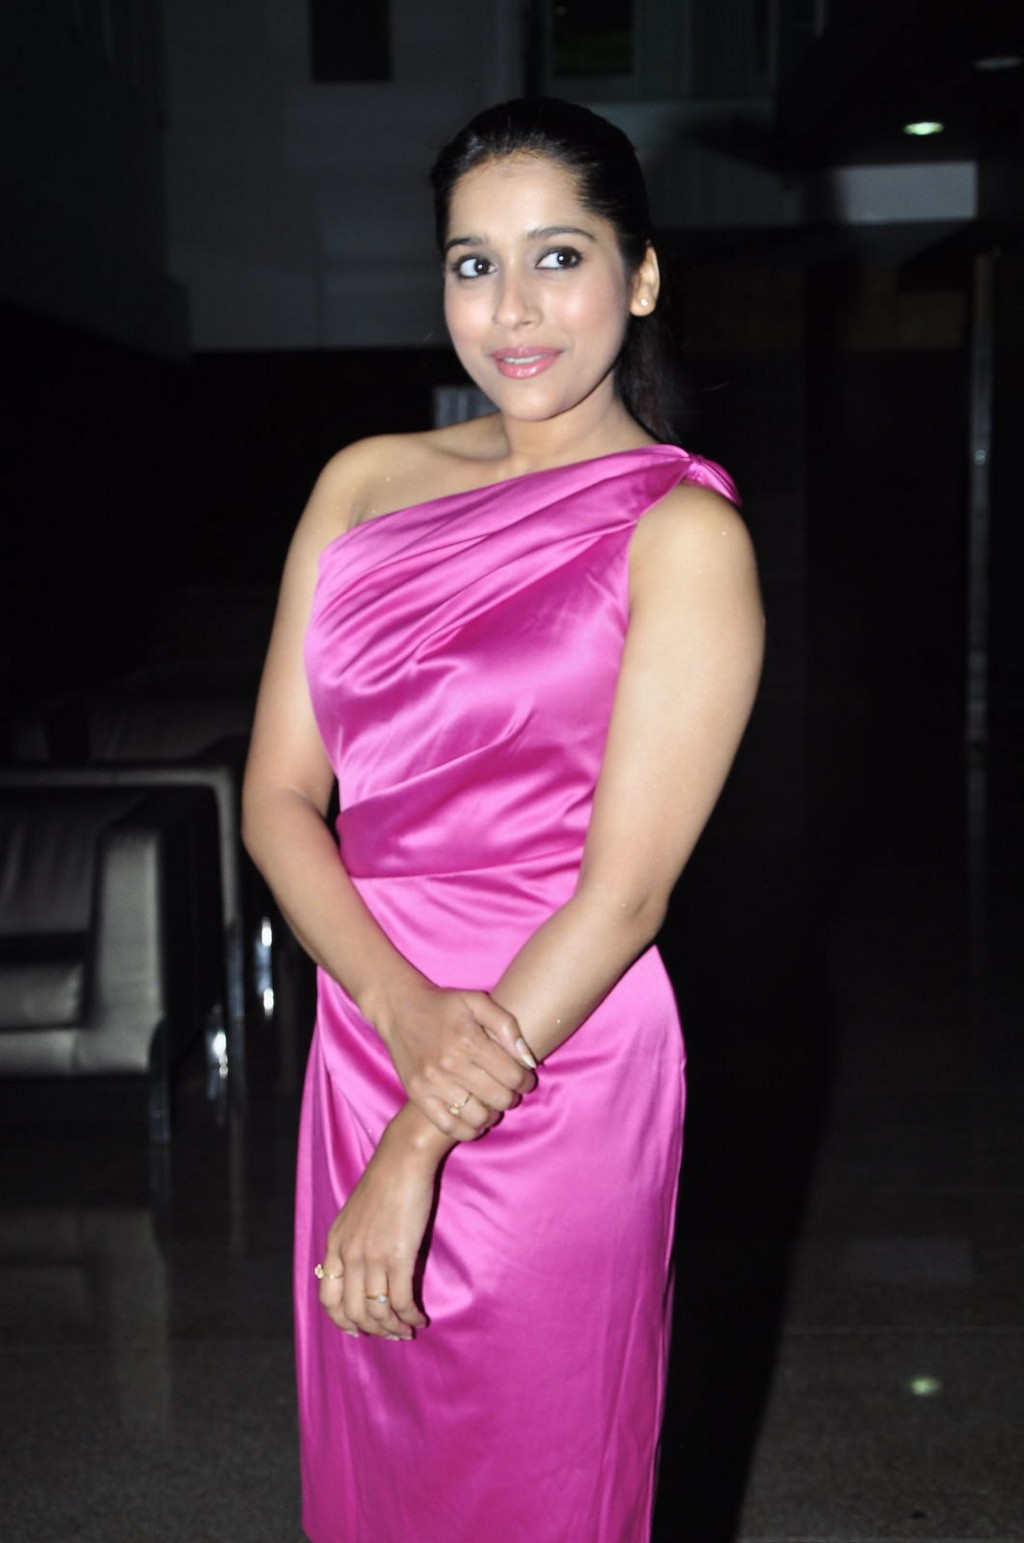 Hot Tollywood Tv Anchor Rashmi Gautam Legs Thighs Show In Pink Dress